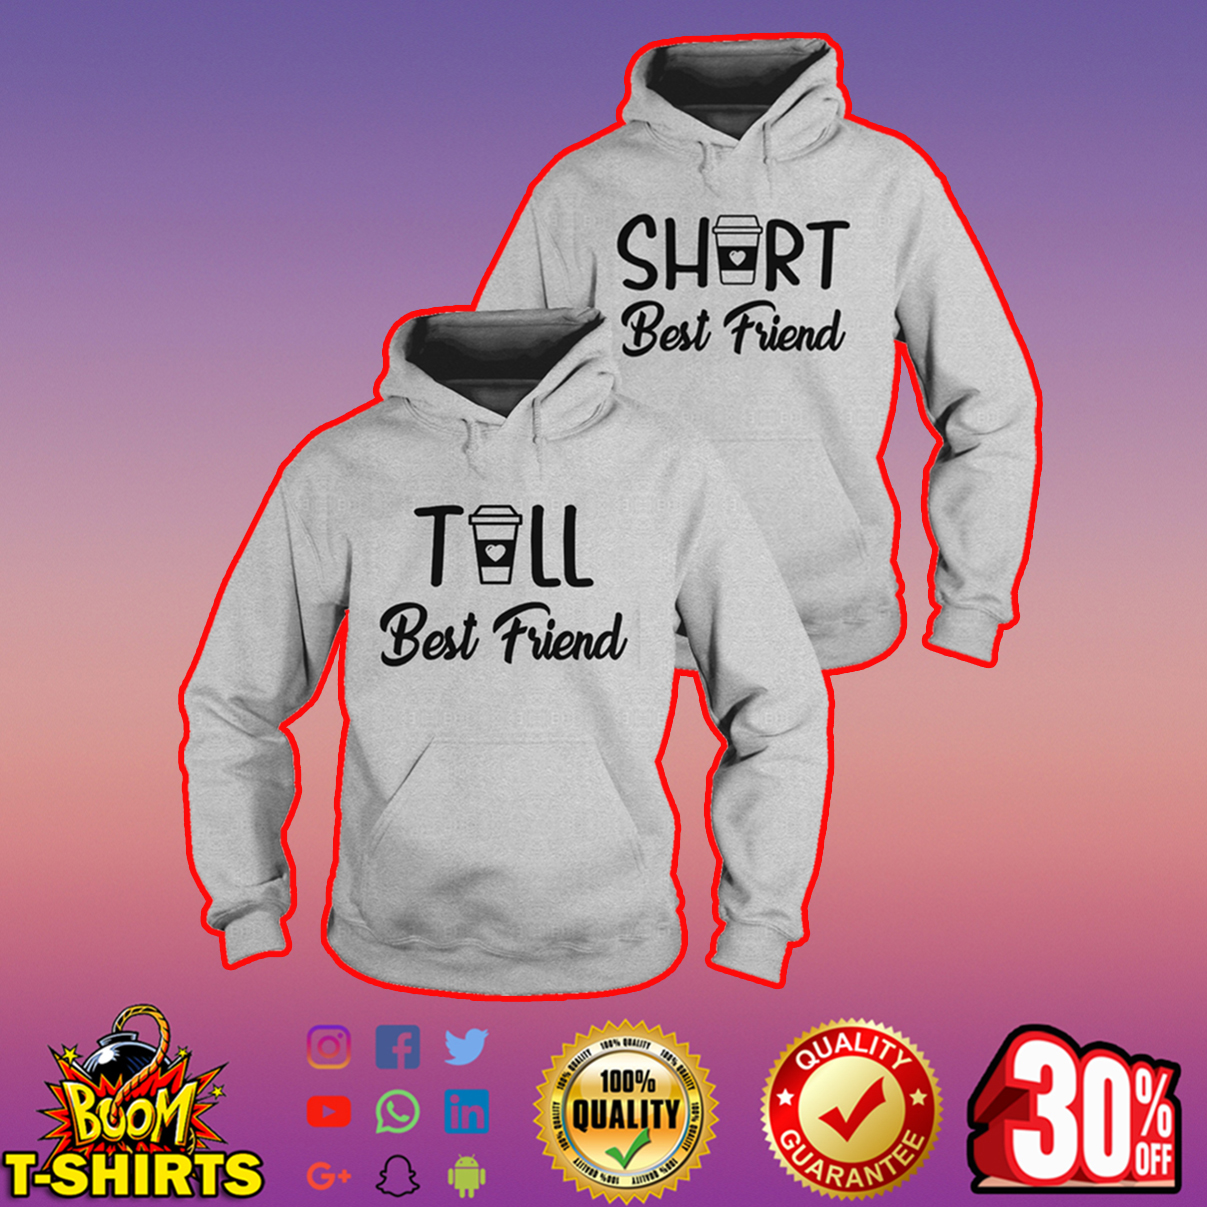 Tall and Short best friend hoodie